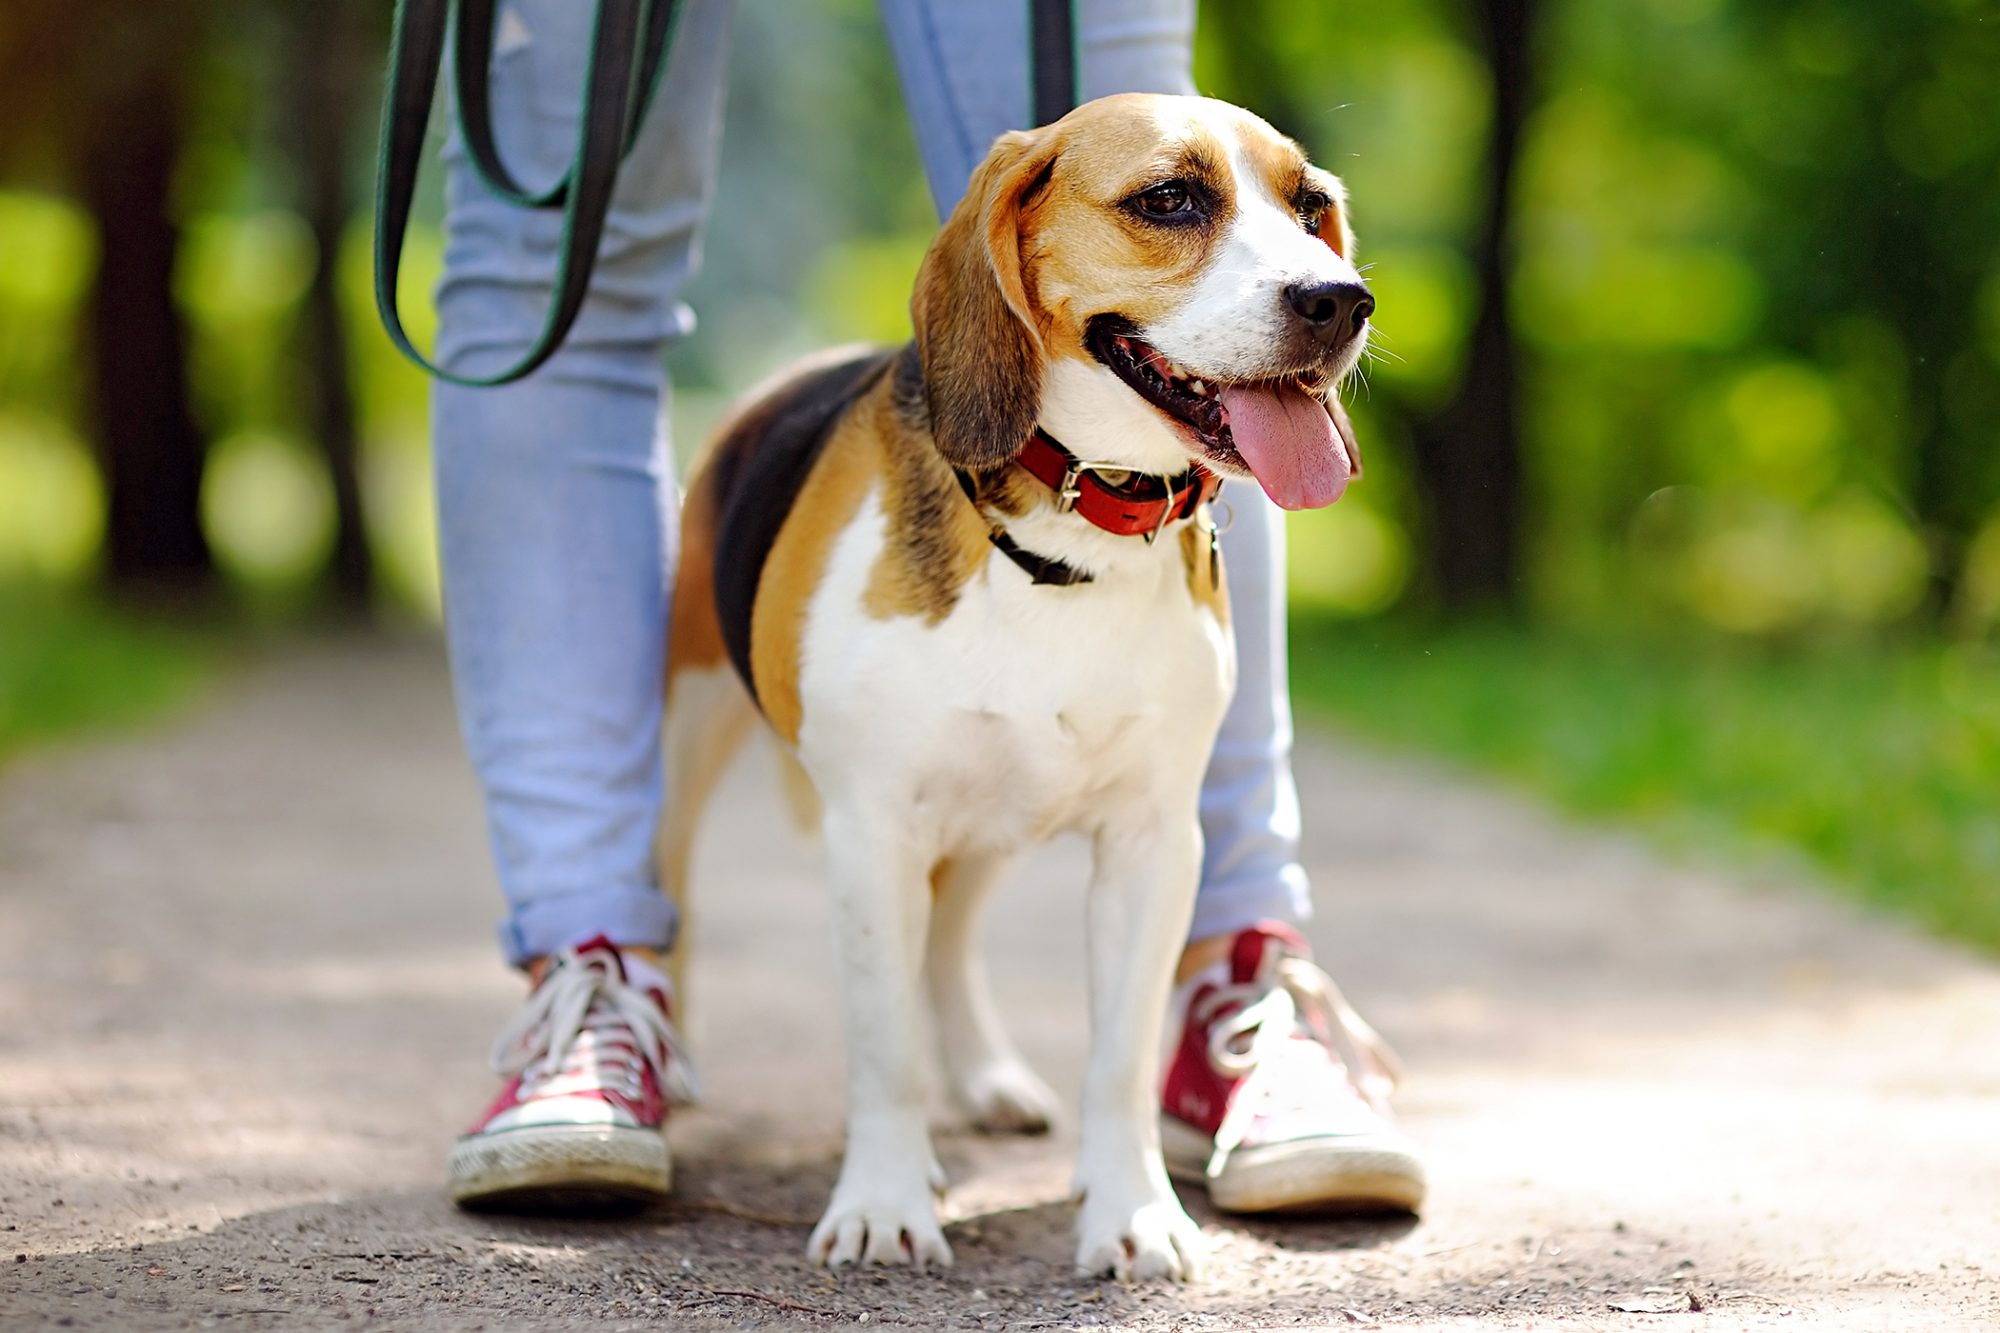 Beagle stands between owner's legs while on walk in park